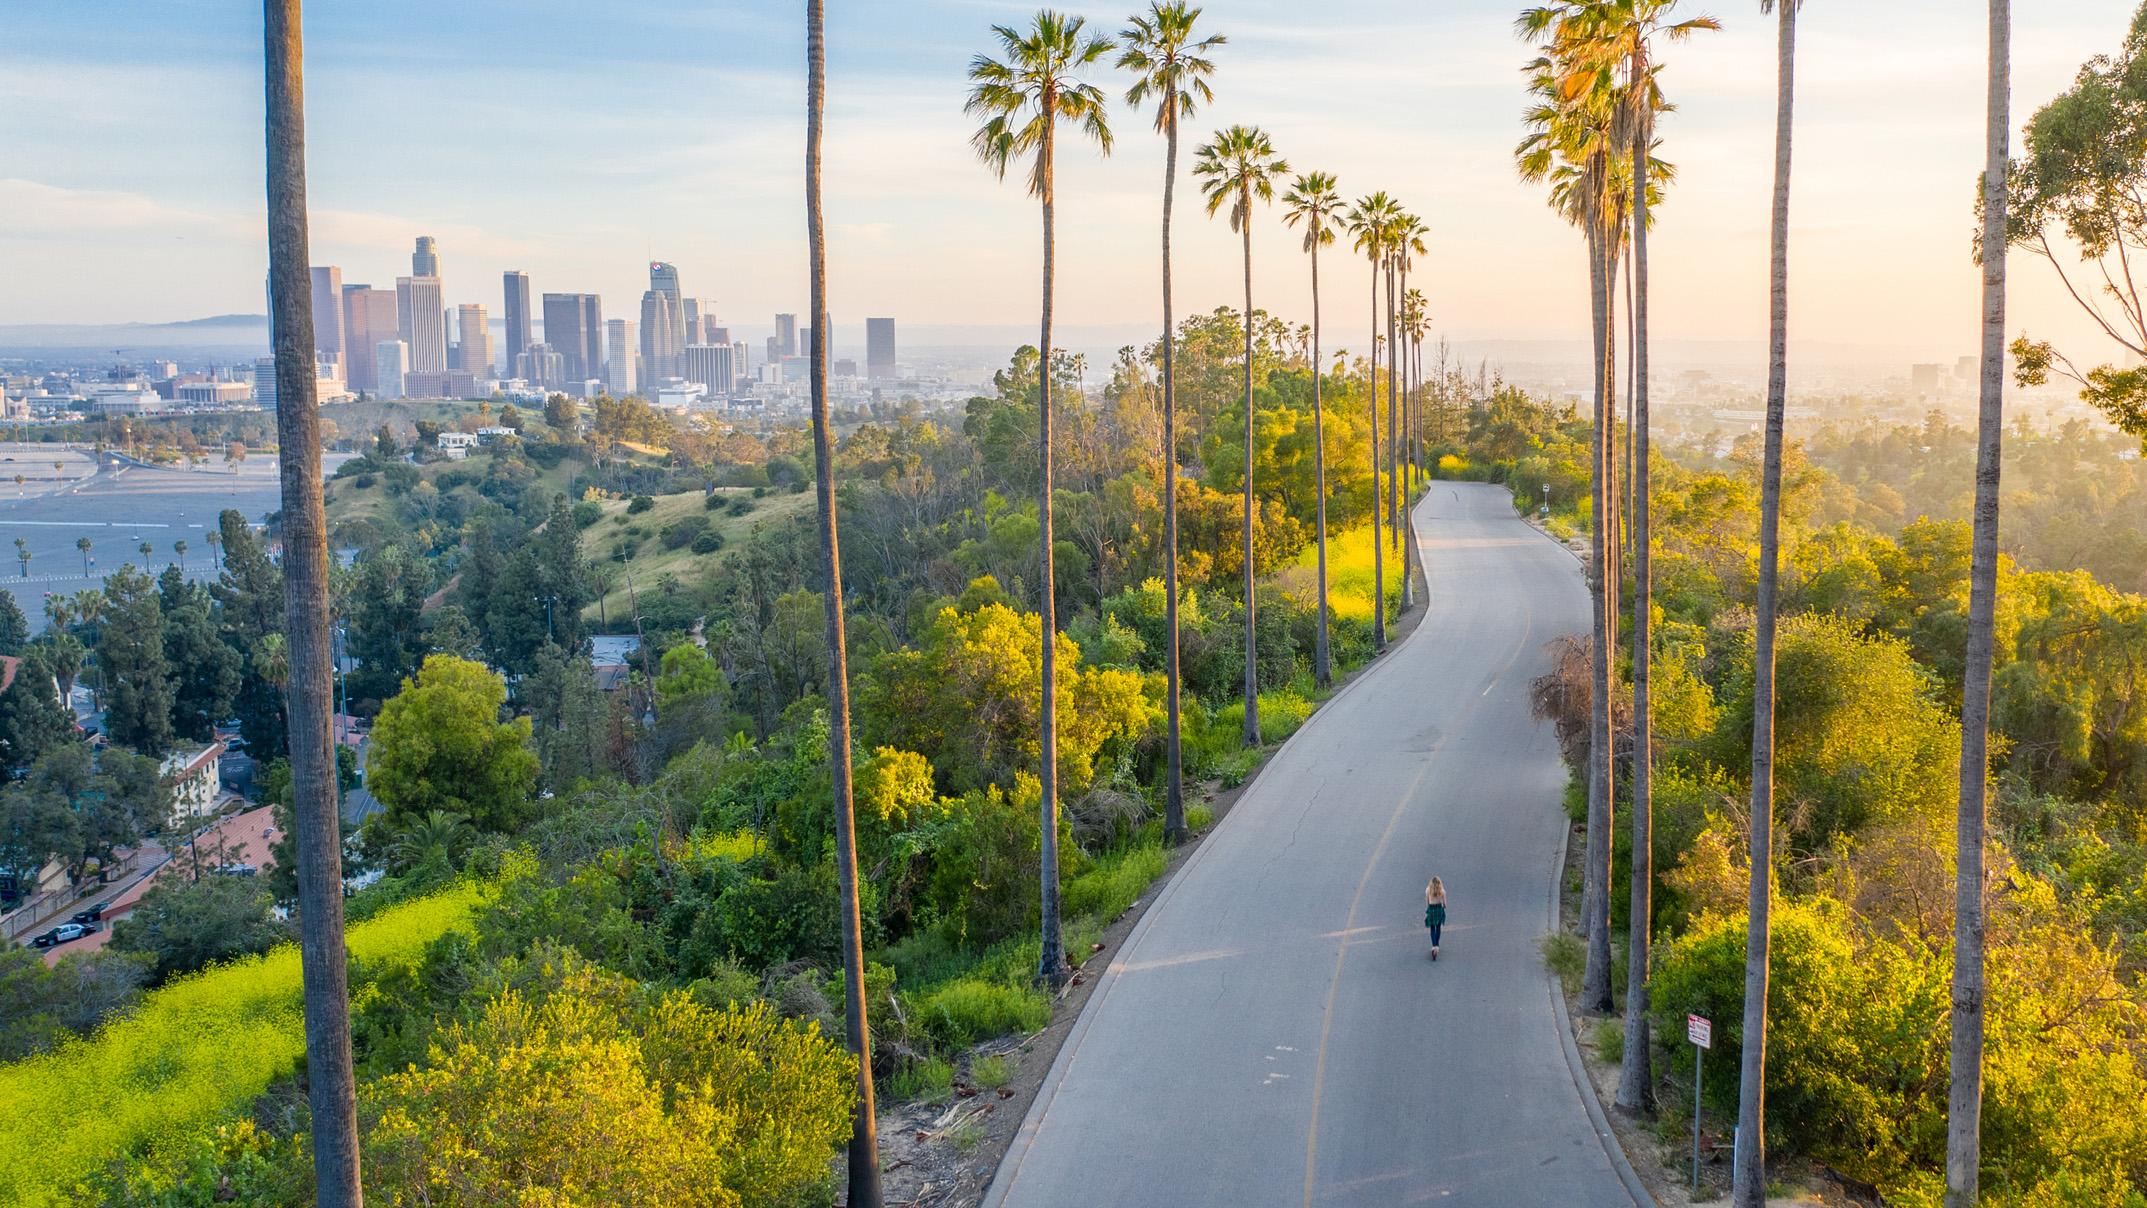 The Must-See Los Angeles Attractions